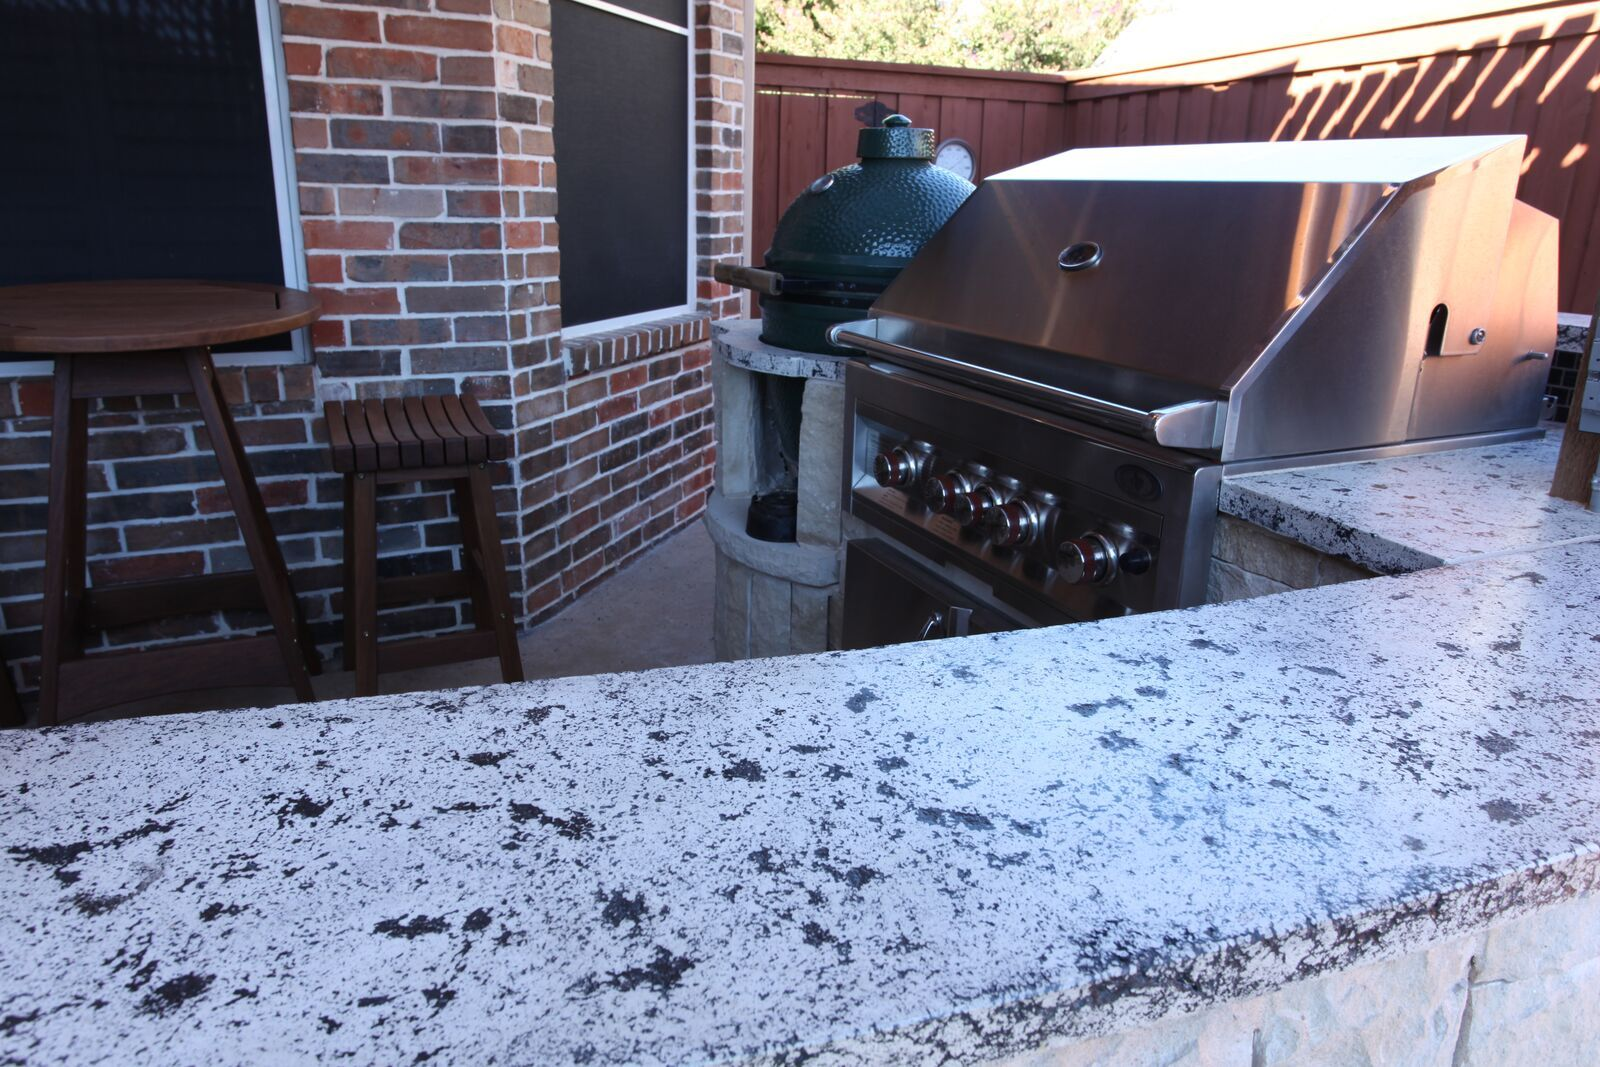 Lshaped outdoor kitchen with stainless bbq green egg and granite